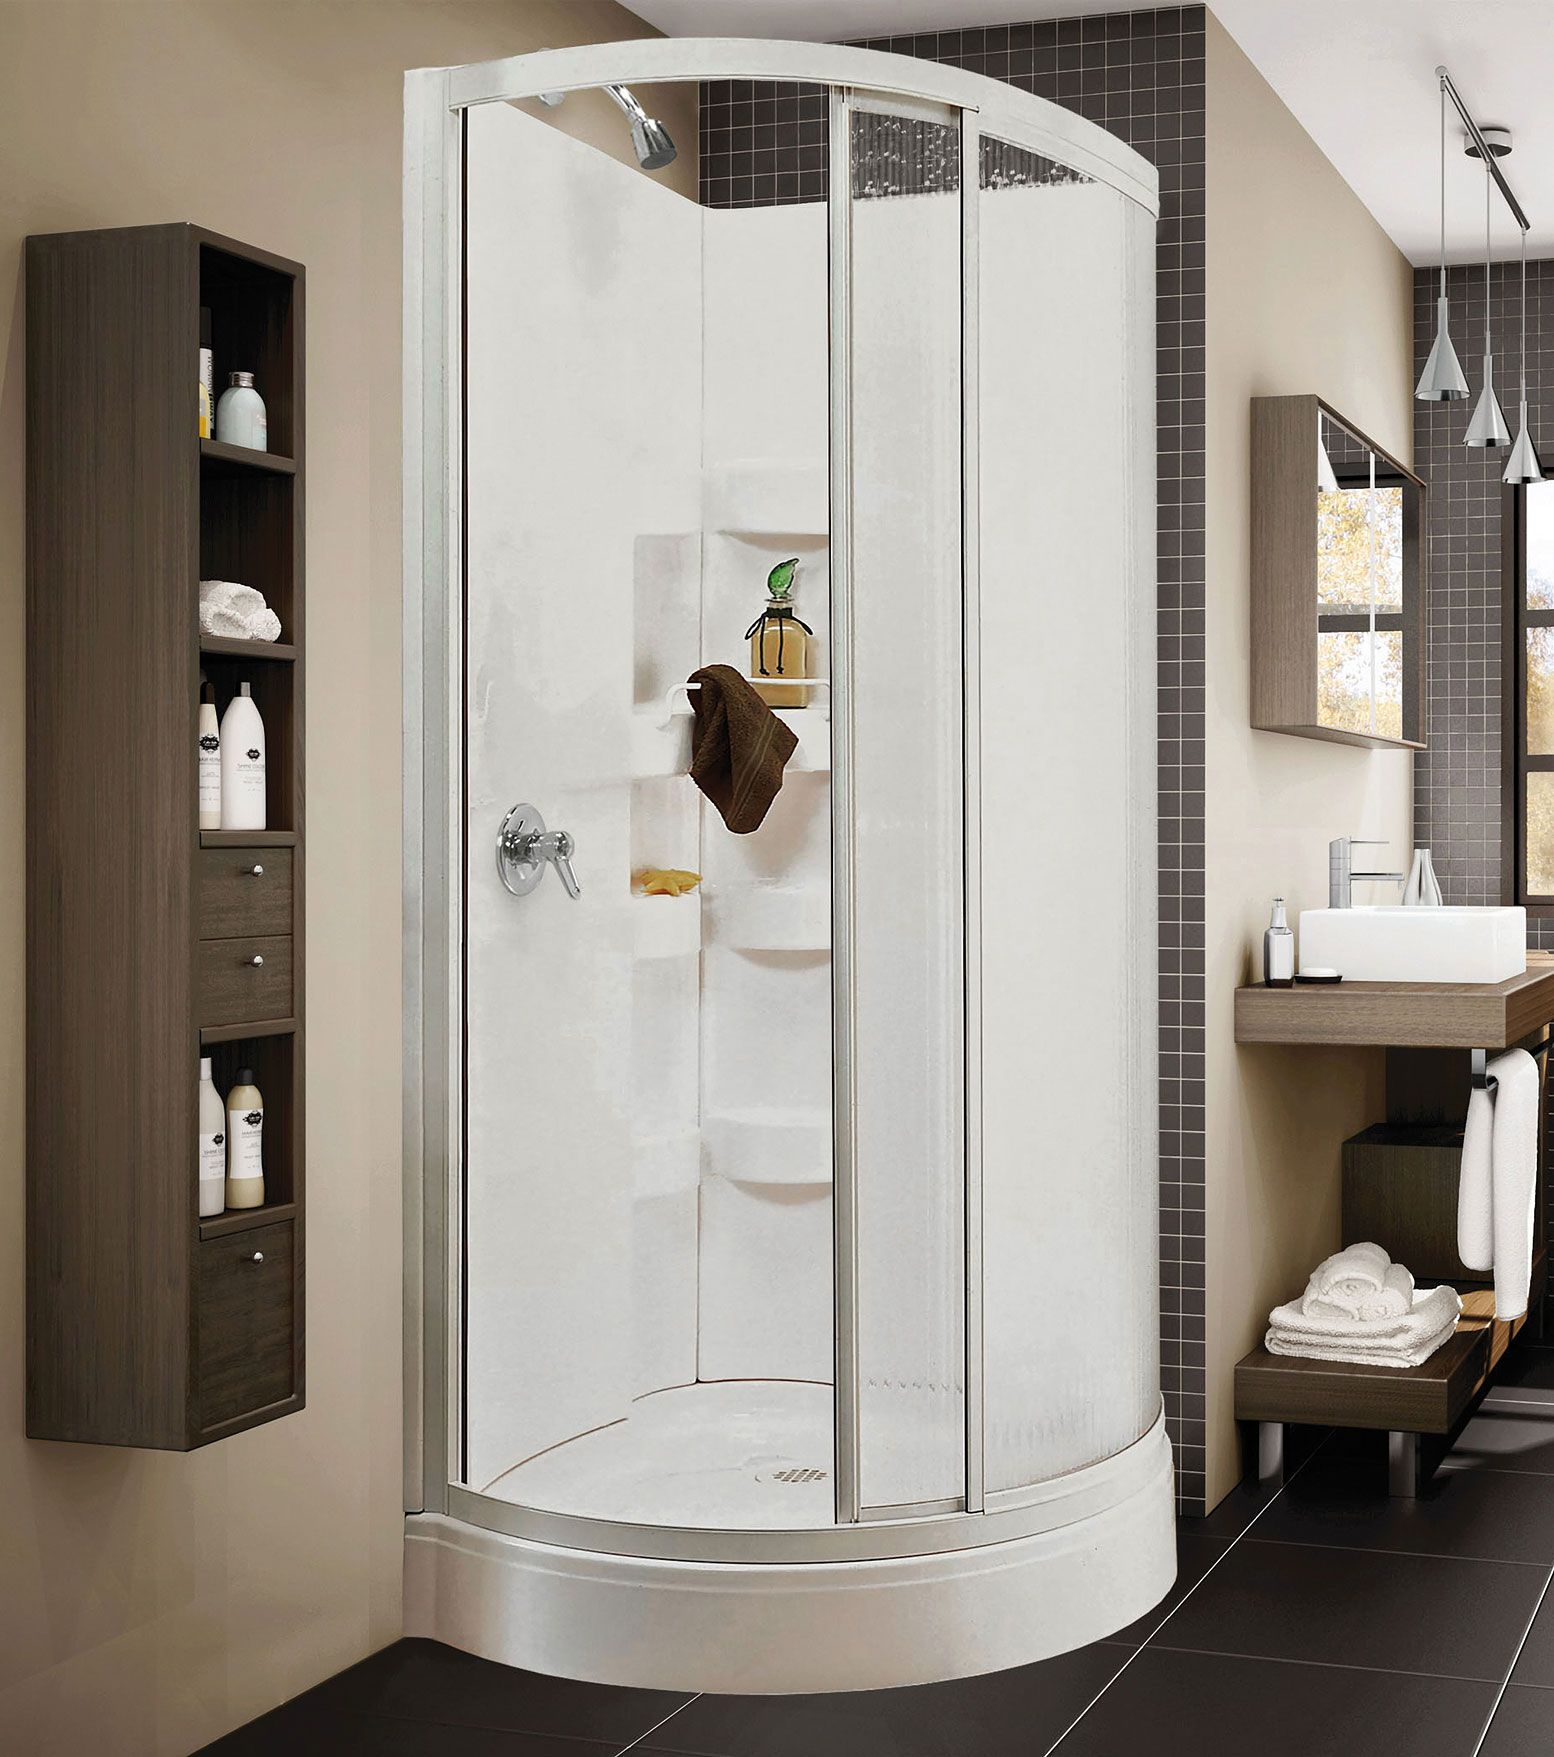 Iris B Corner shower - Keystone by MAAX | Home improvement ideas ...